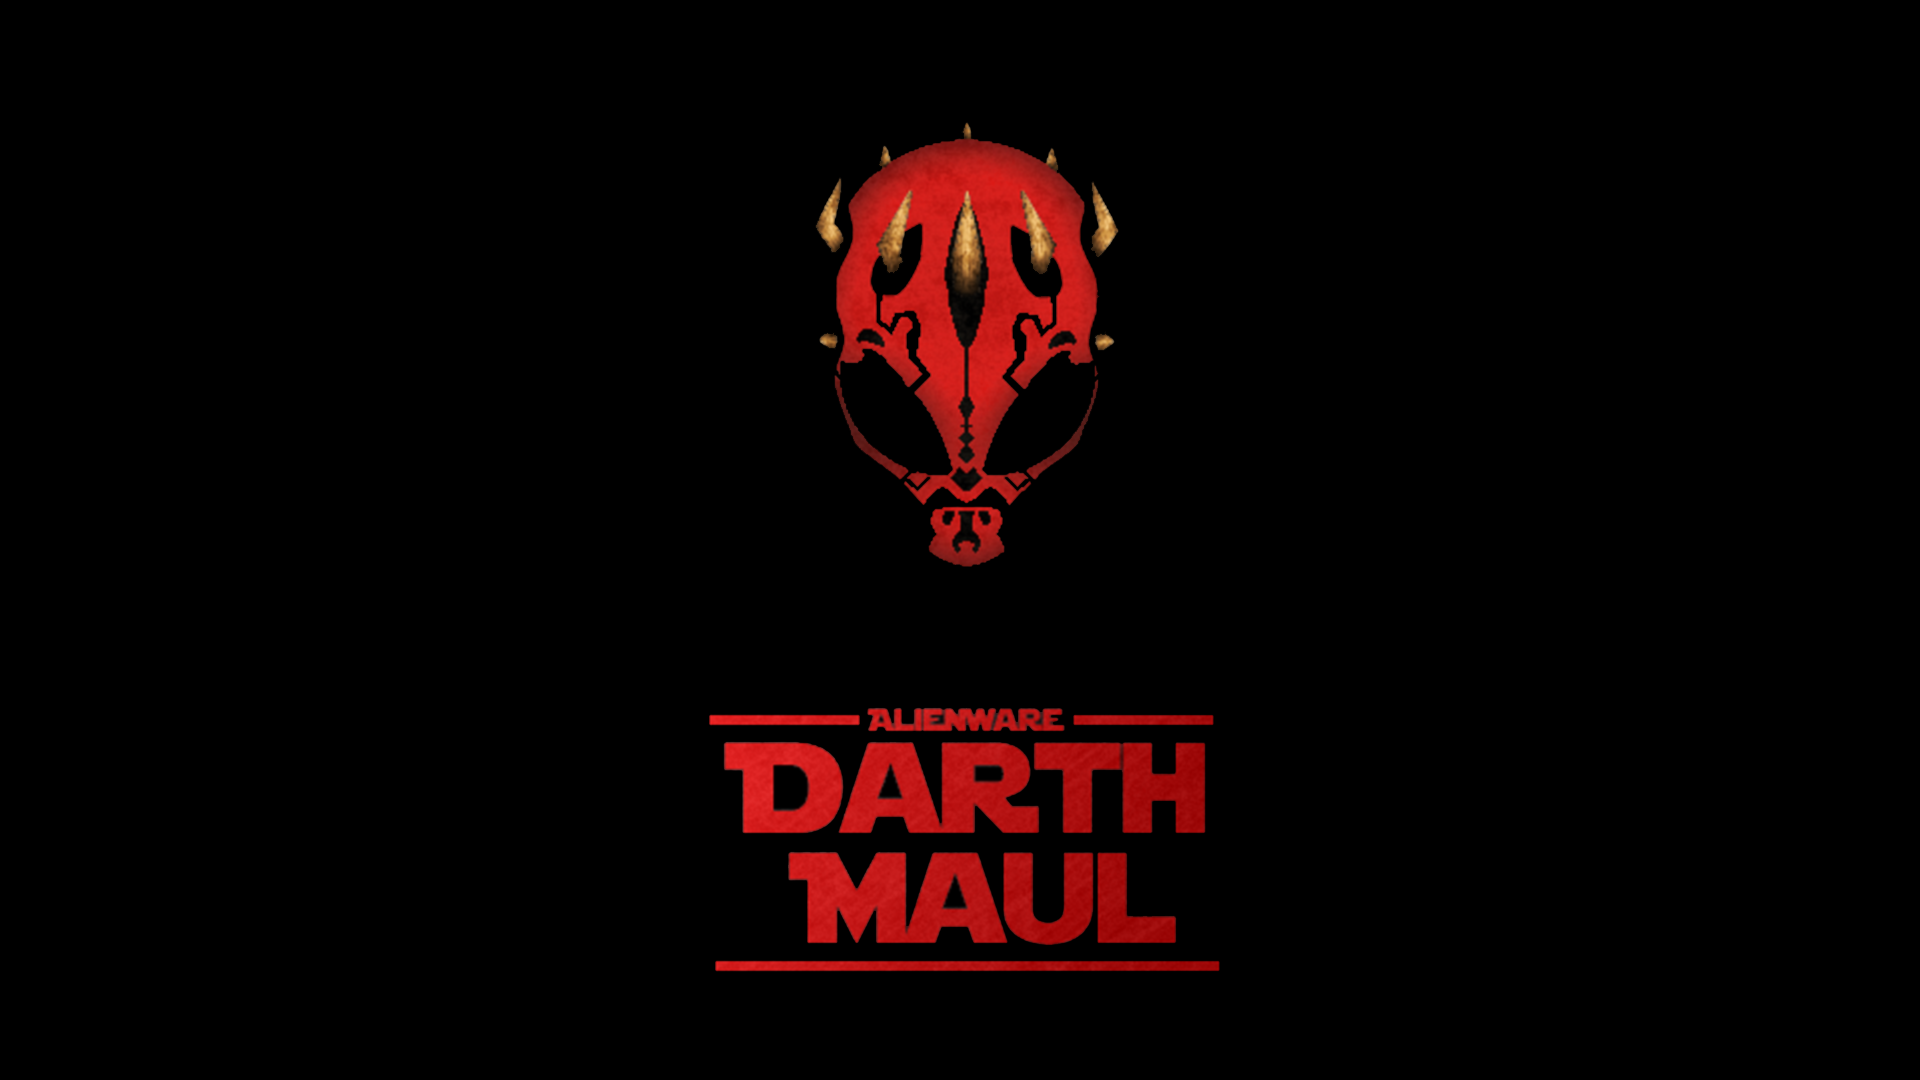 Download free darth maul wallpapers for your mobile phone - by ...